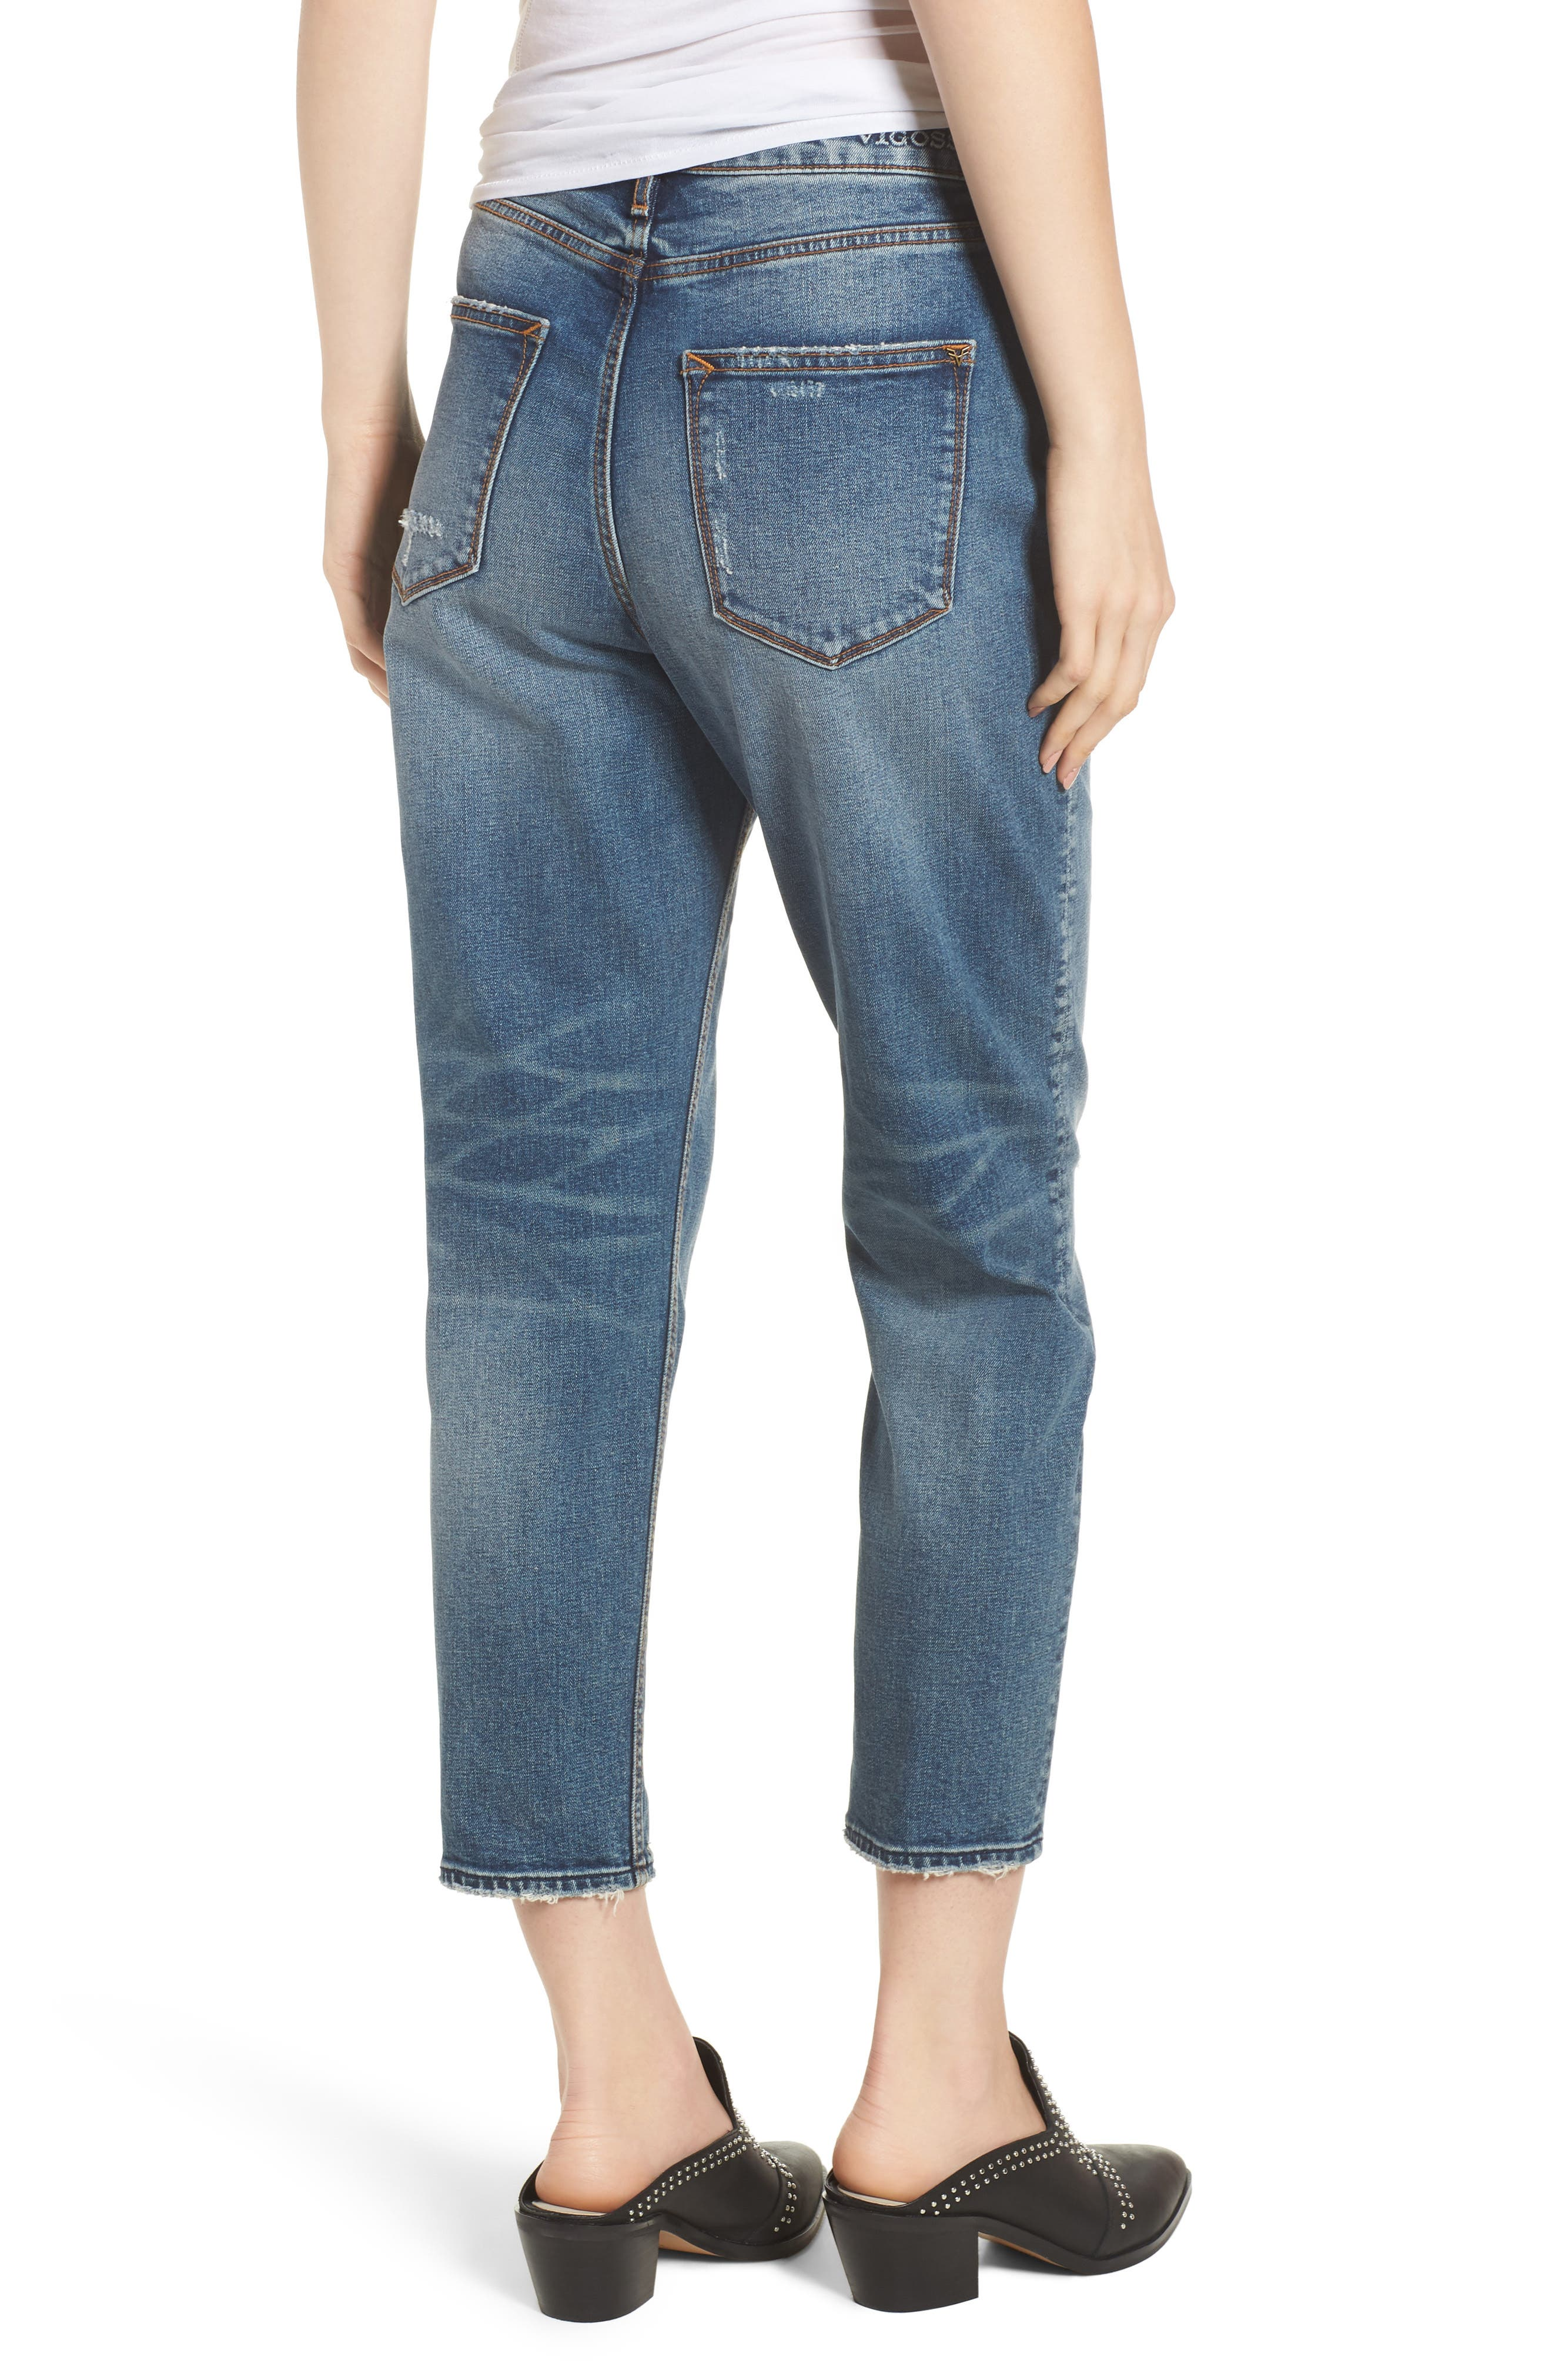 Friday Distressed Tapered Boyfriend Jeans,                             Alternate thumbnail 2, color,                             426